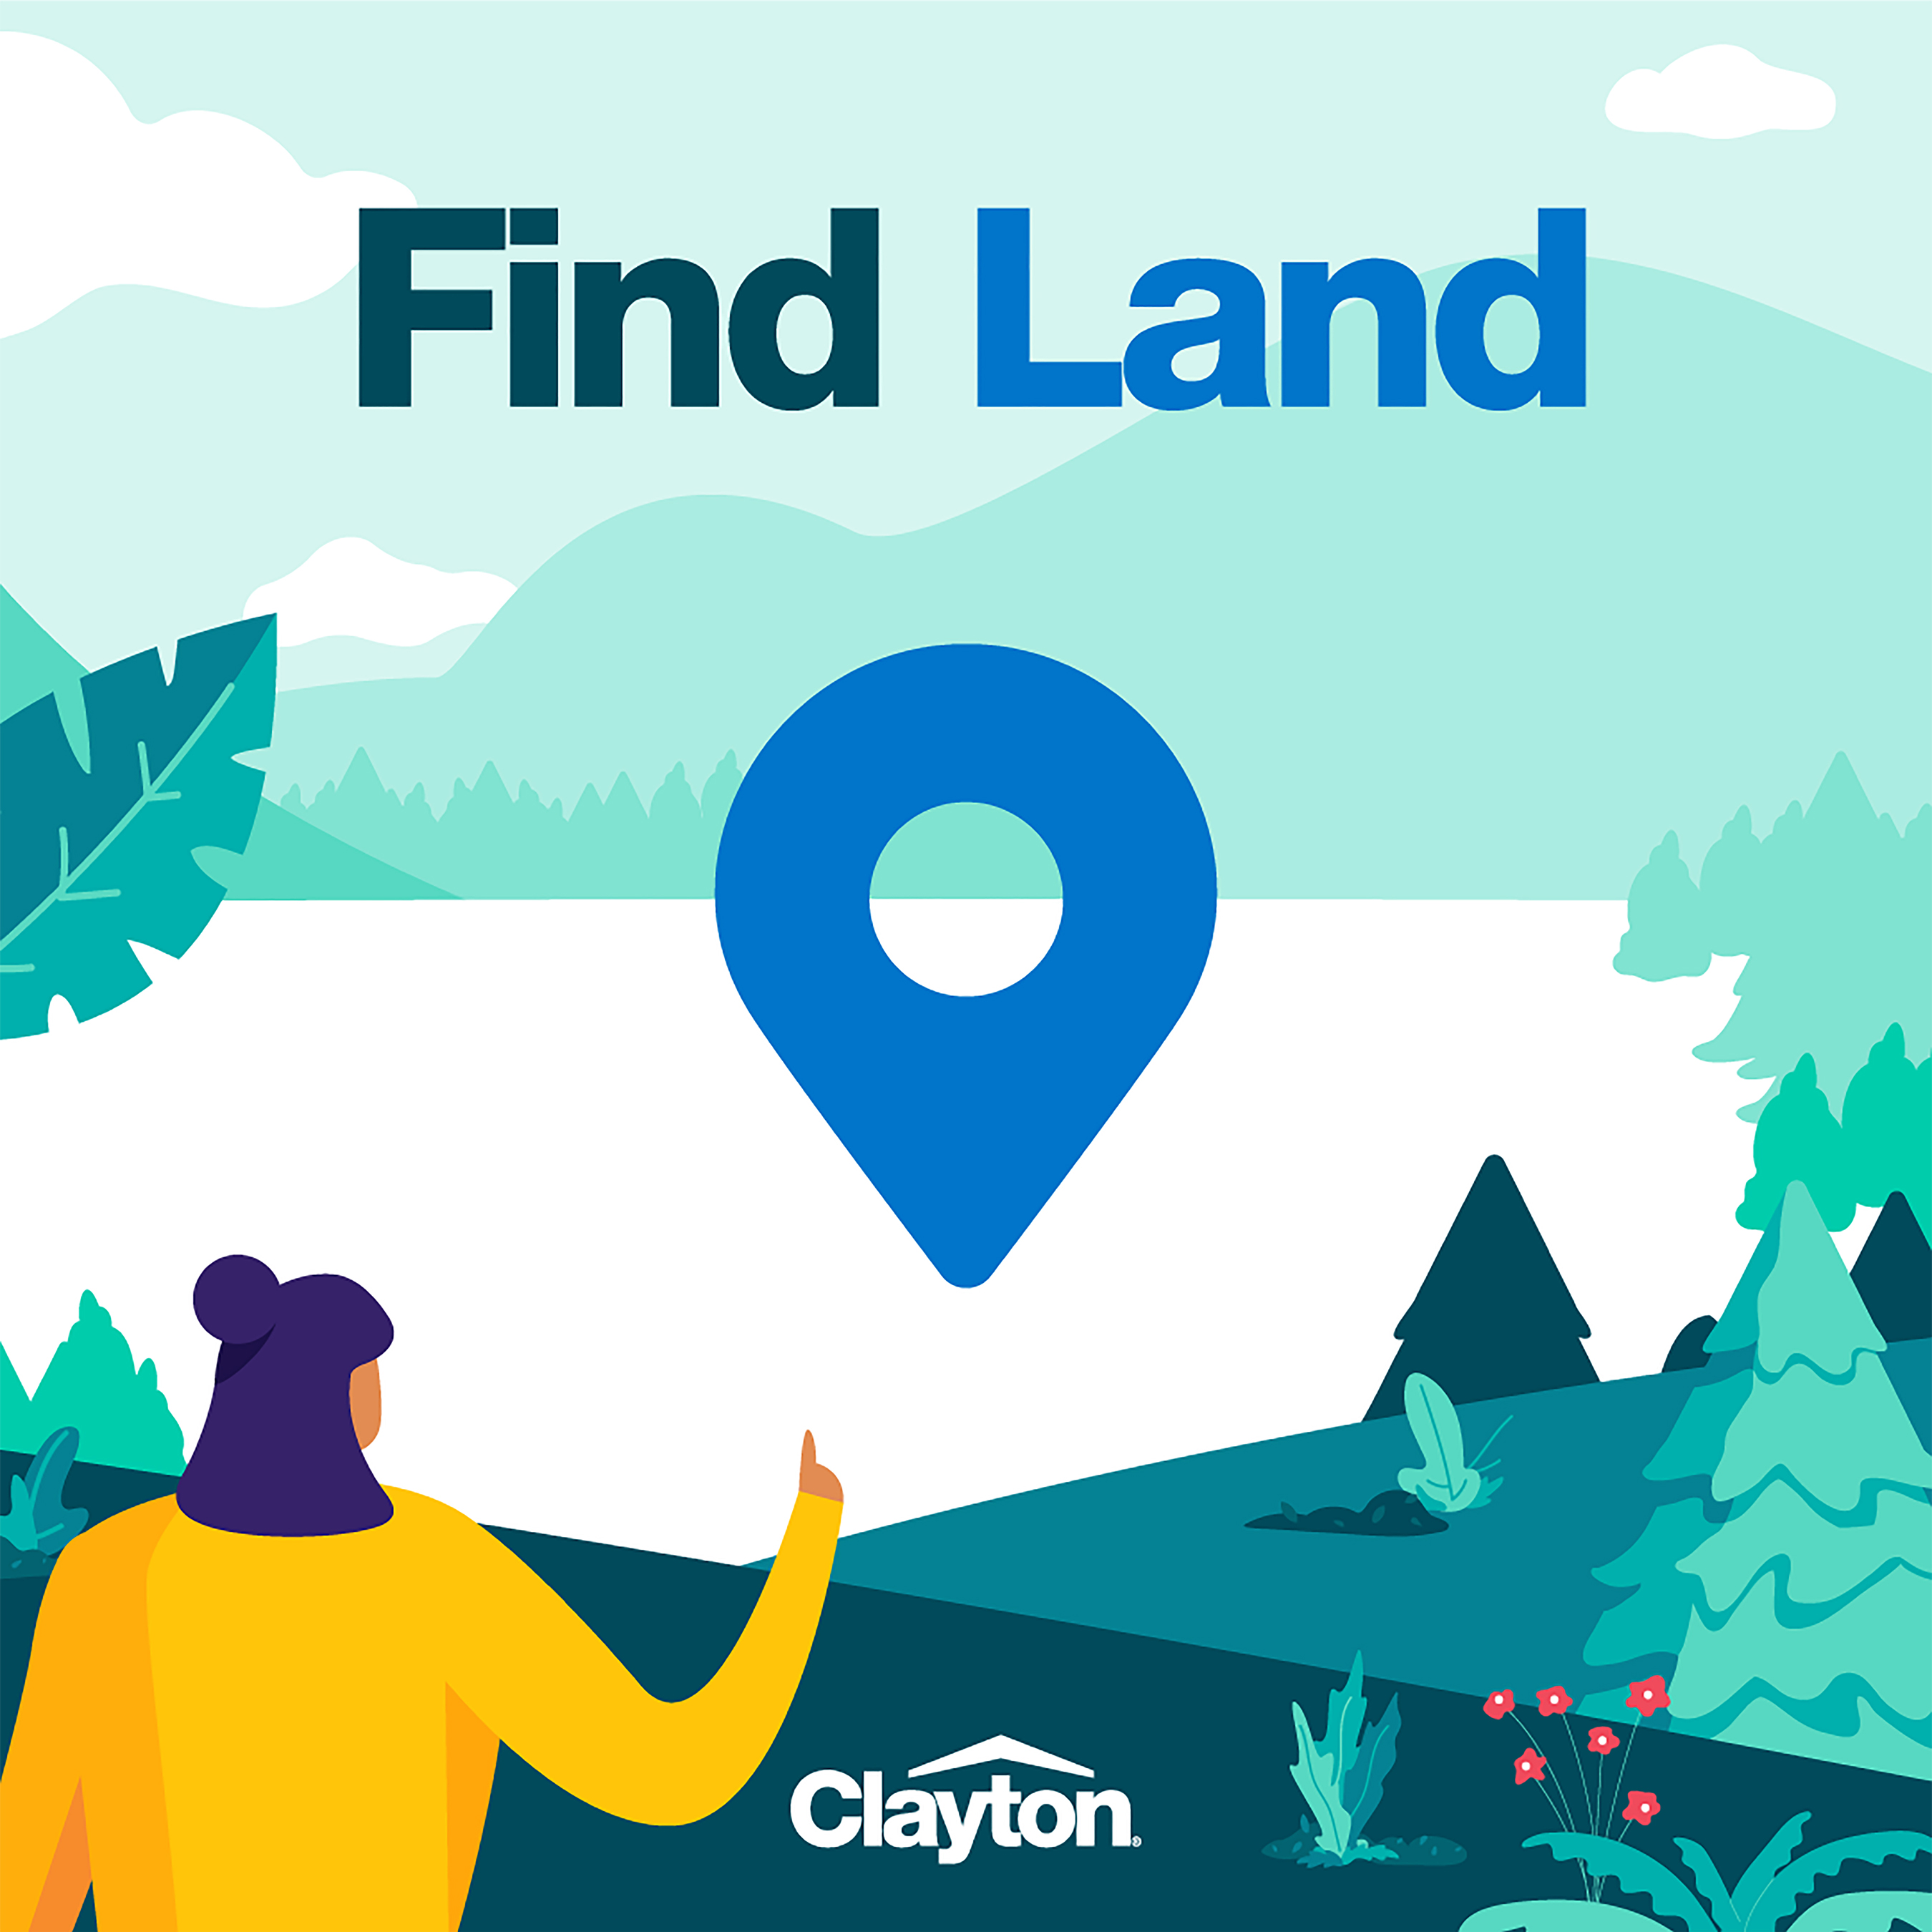 Find Land allows users to view land listing details and connect with real estate agents.